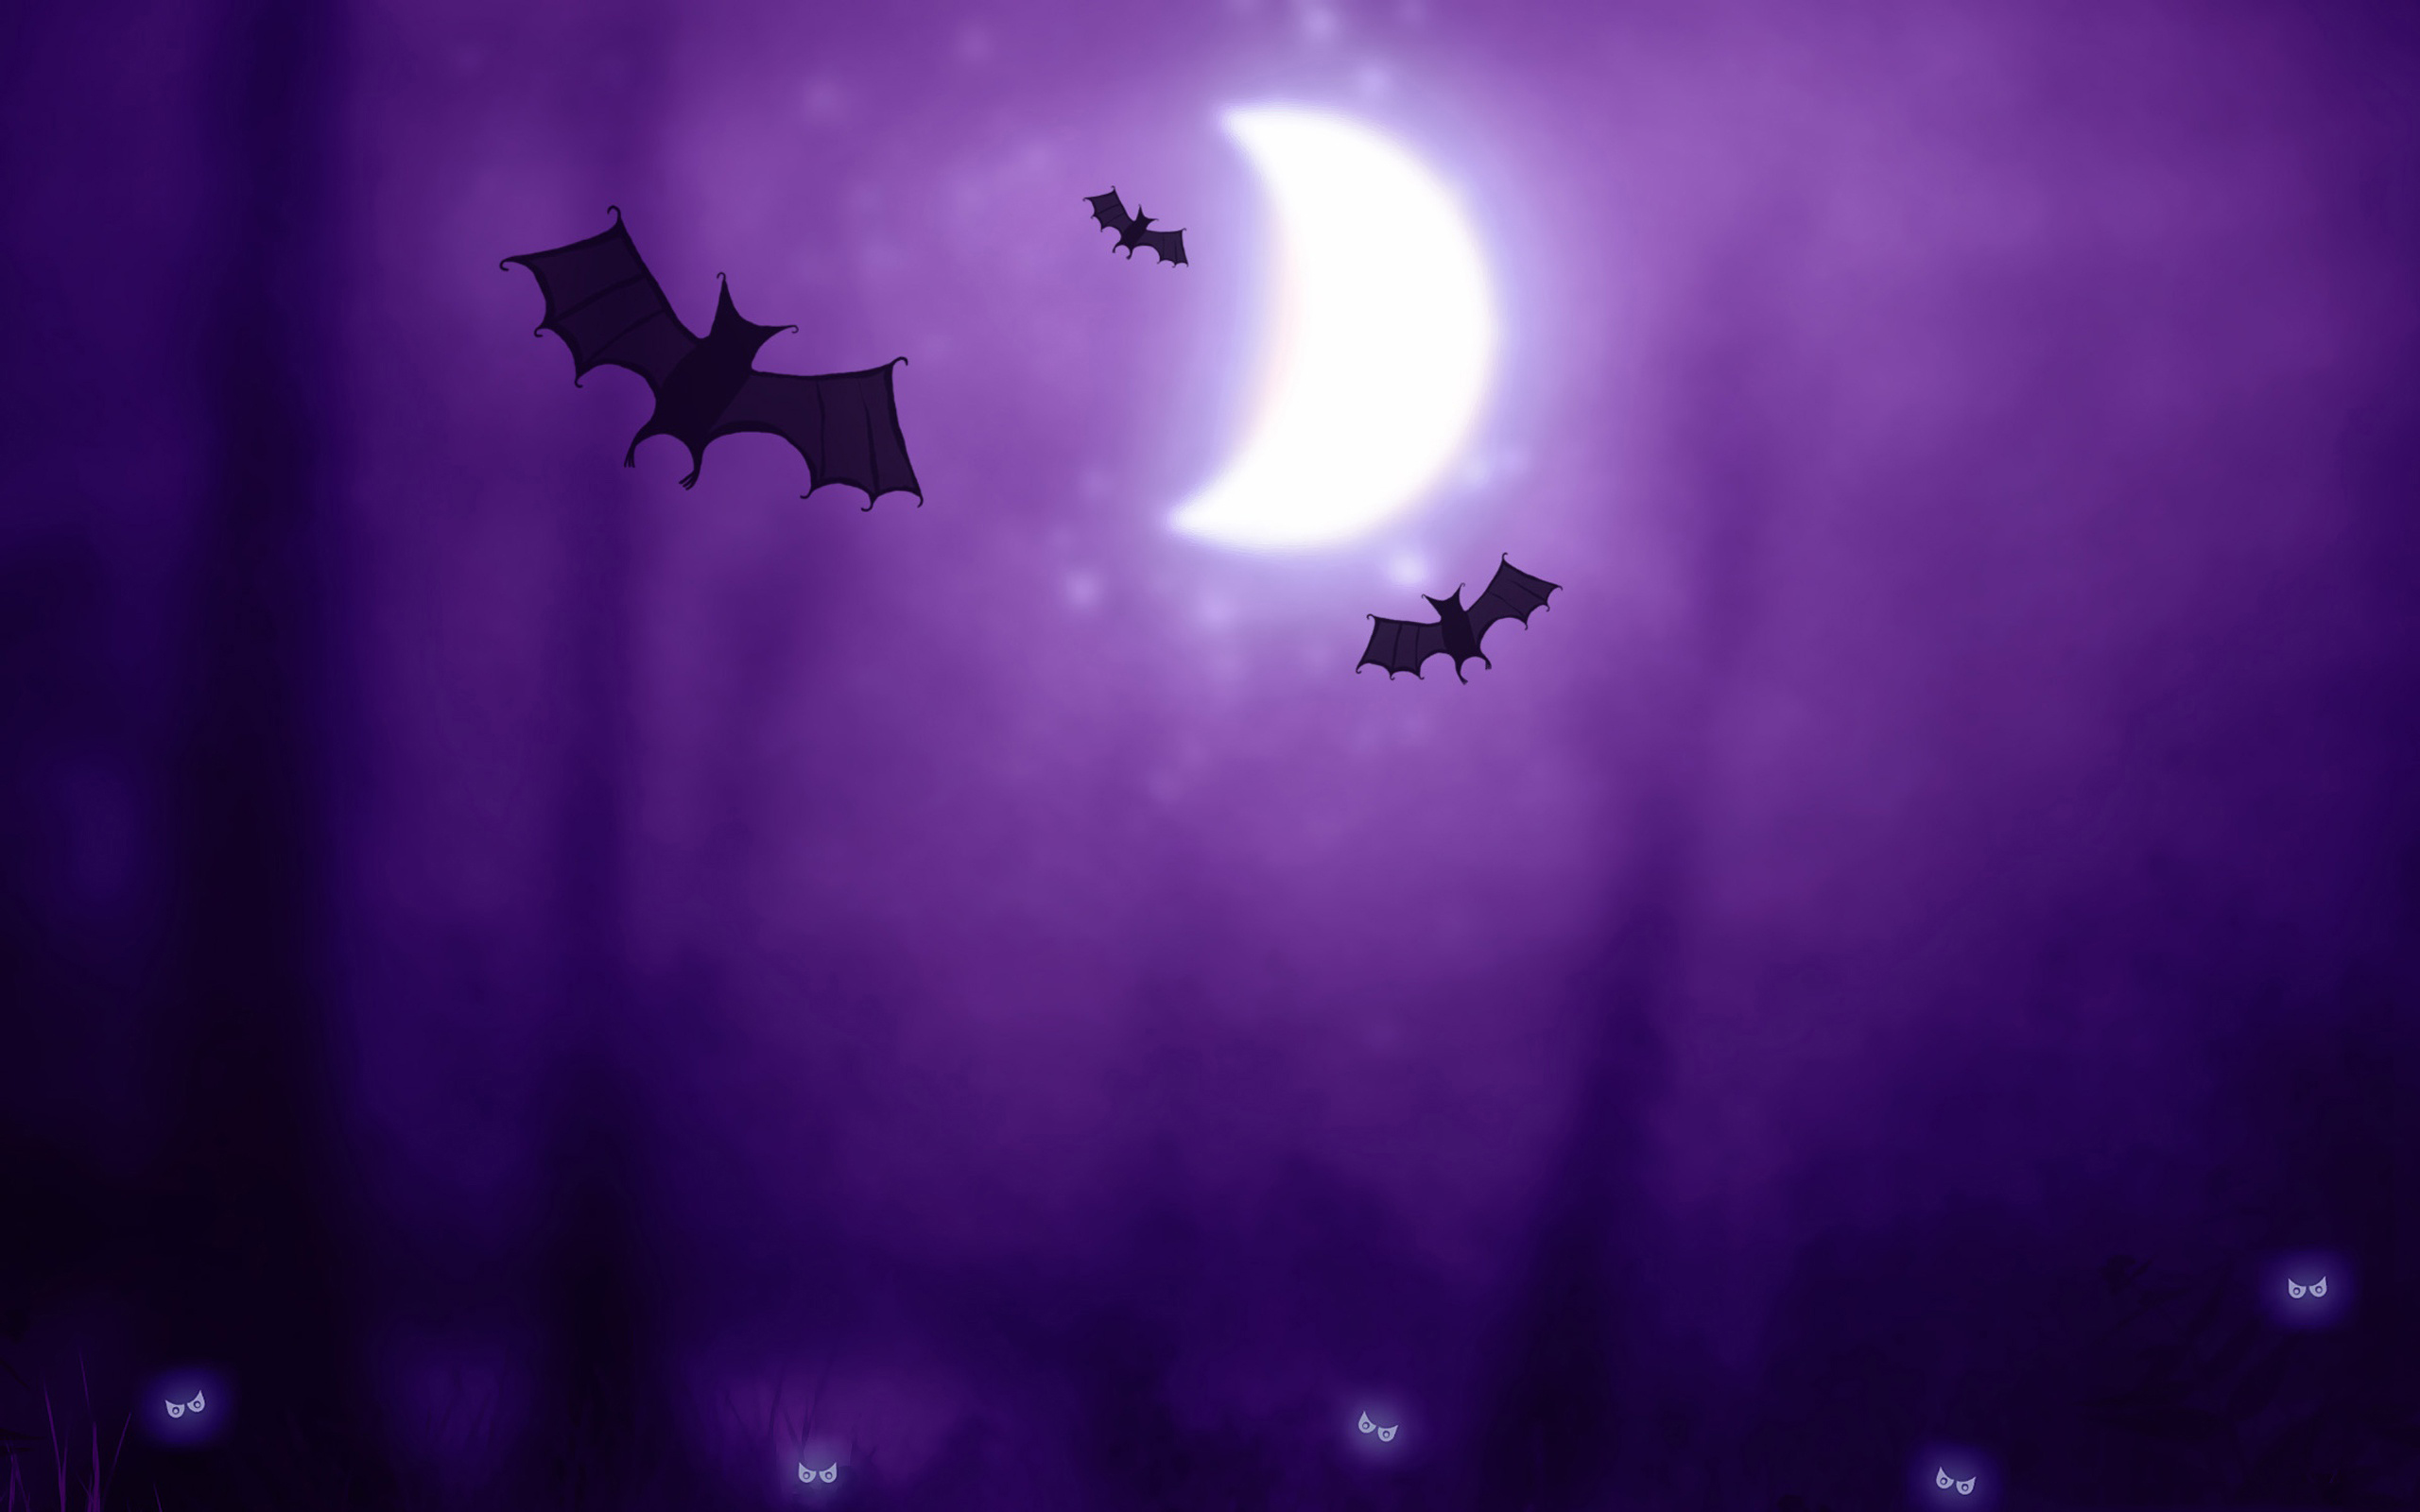 Happy Halloween Wallpapers for your widescreen LCD monitors 2560x1600